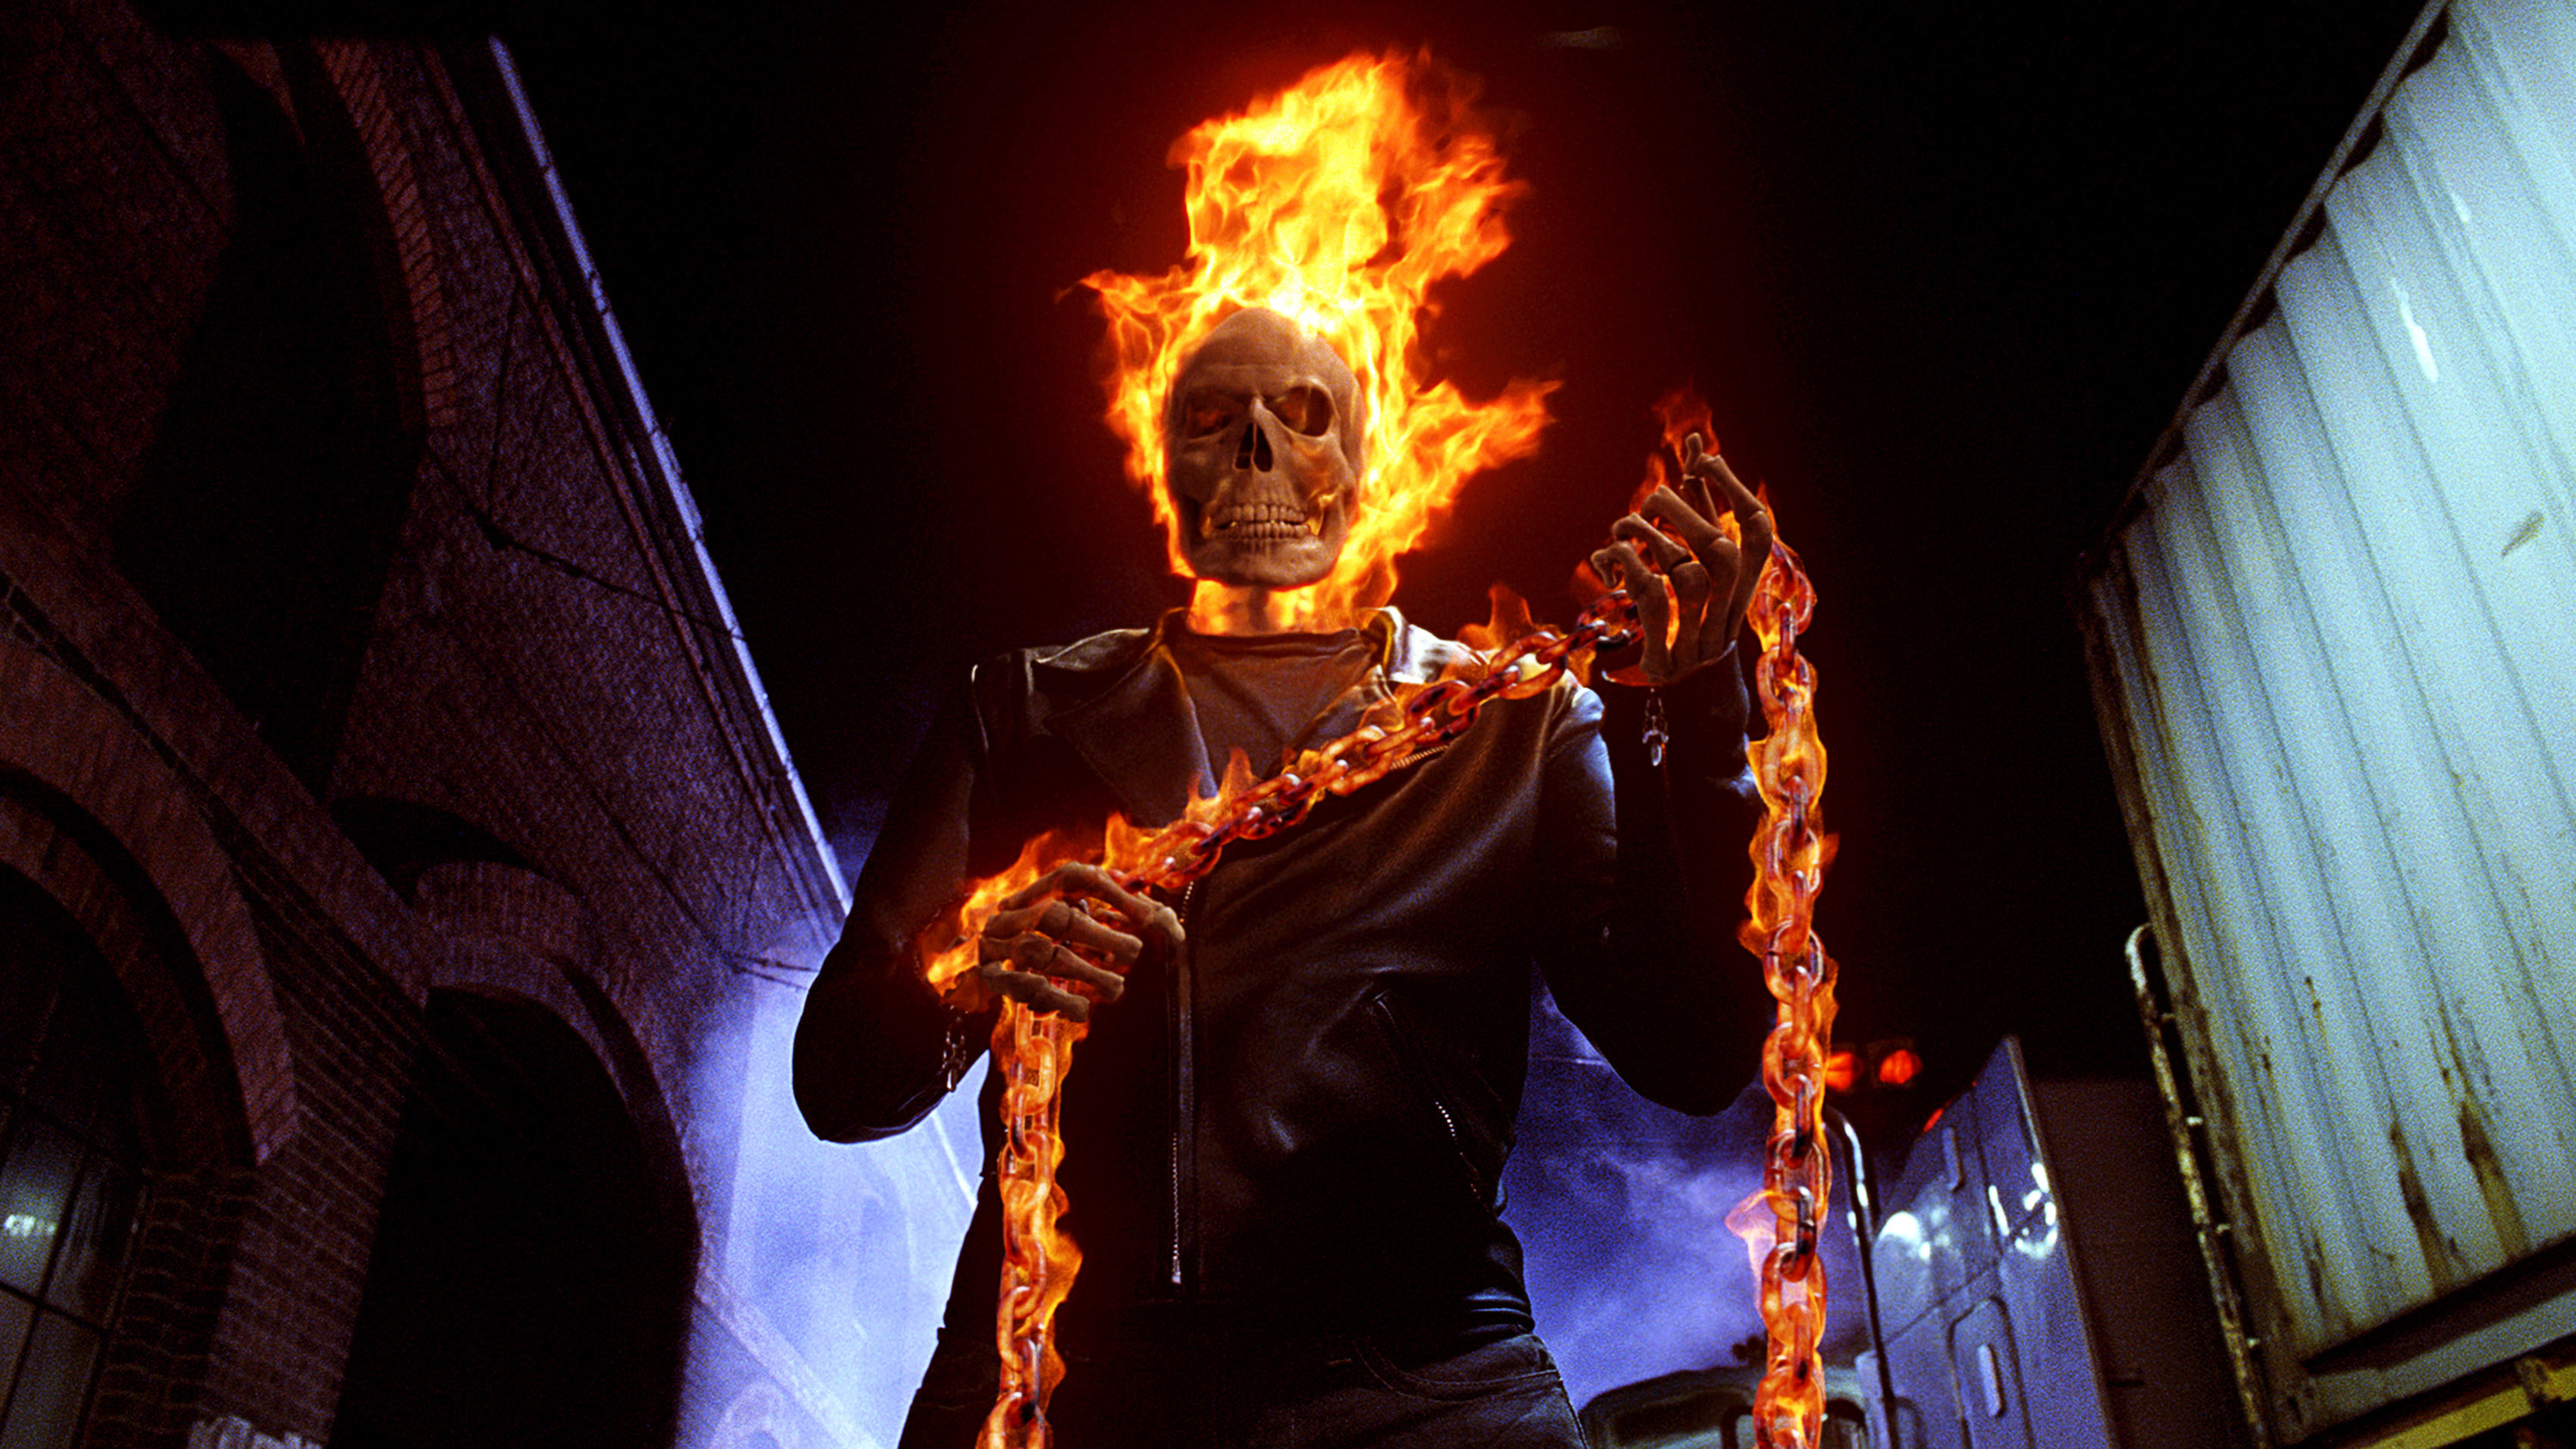 Ghost Rider holding a chain that is on fire